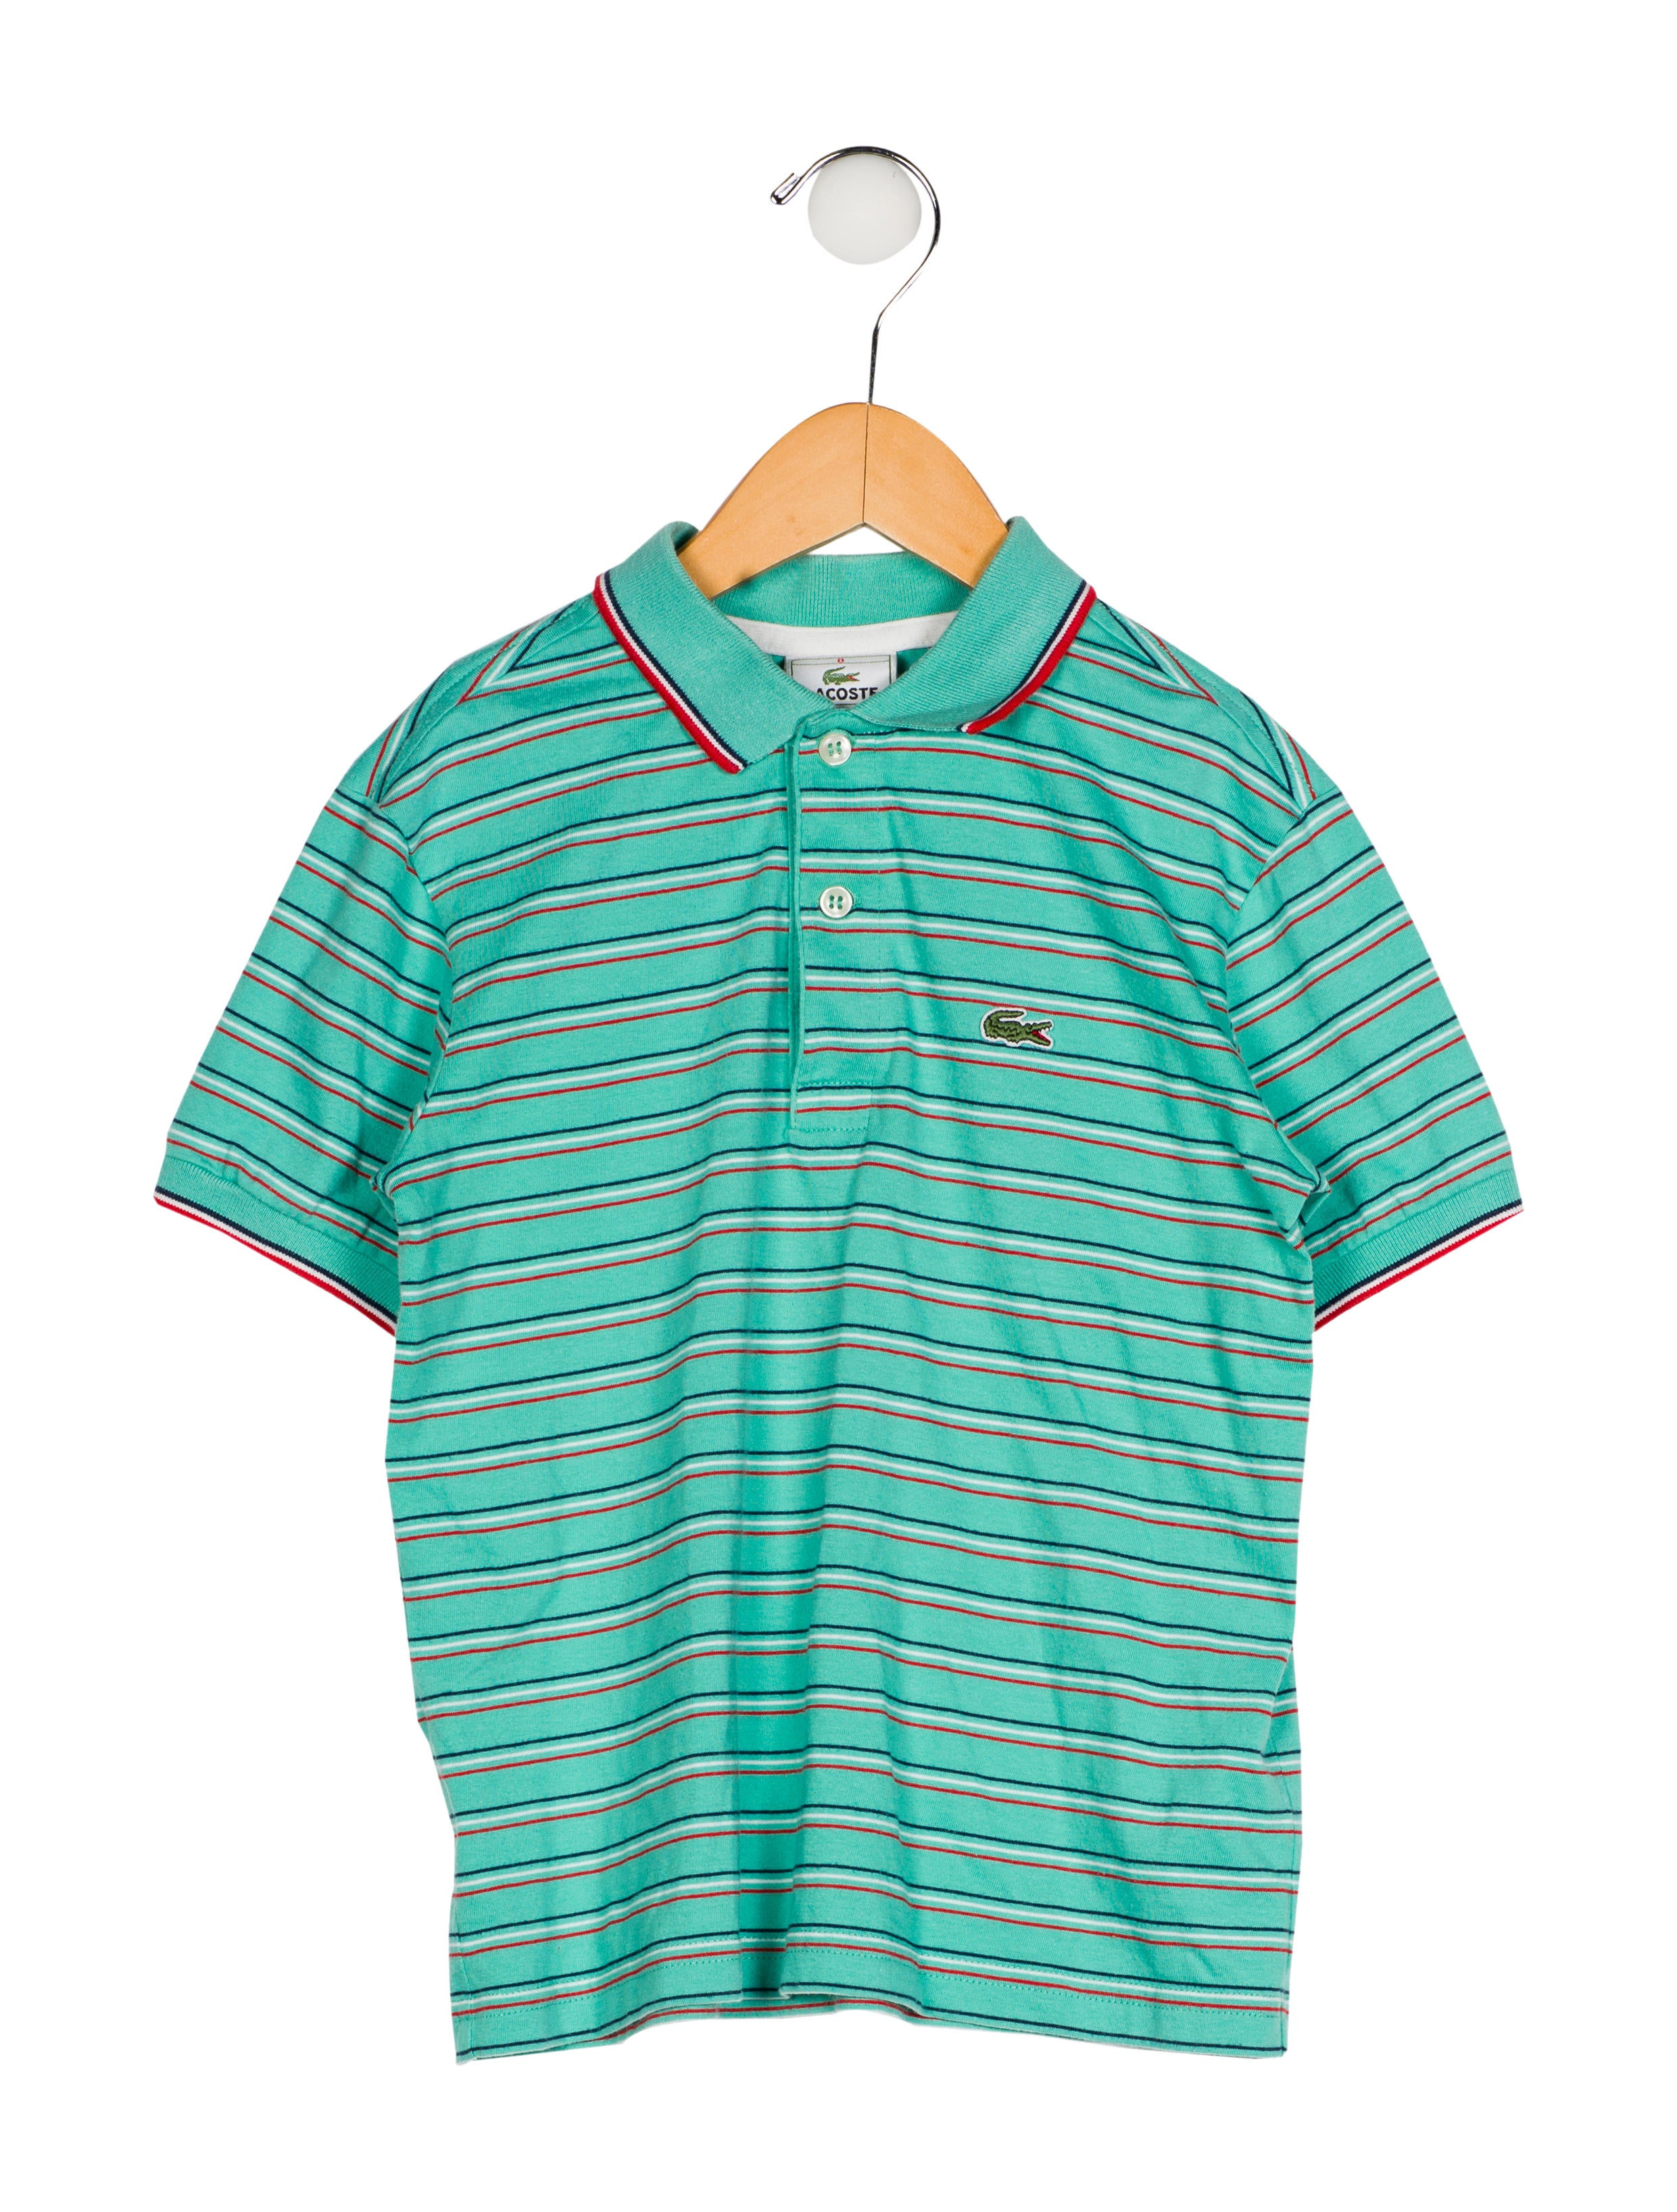 0fe7d3307 Cheap Lacoste Shirts For Toddlers - Cotswold Hire